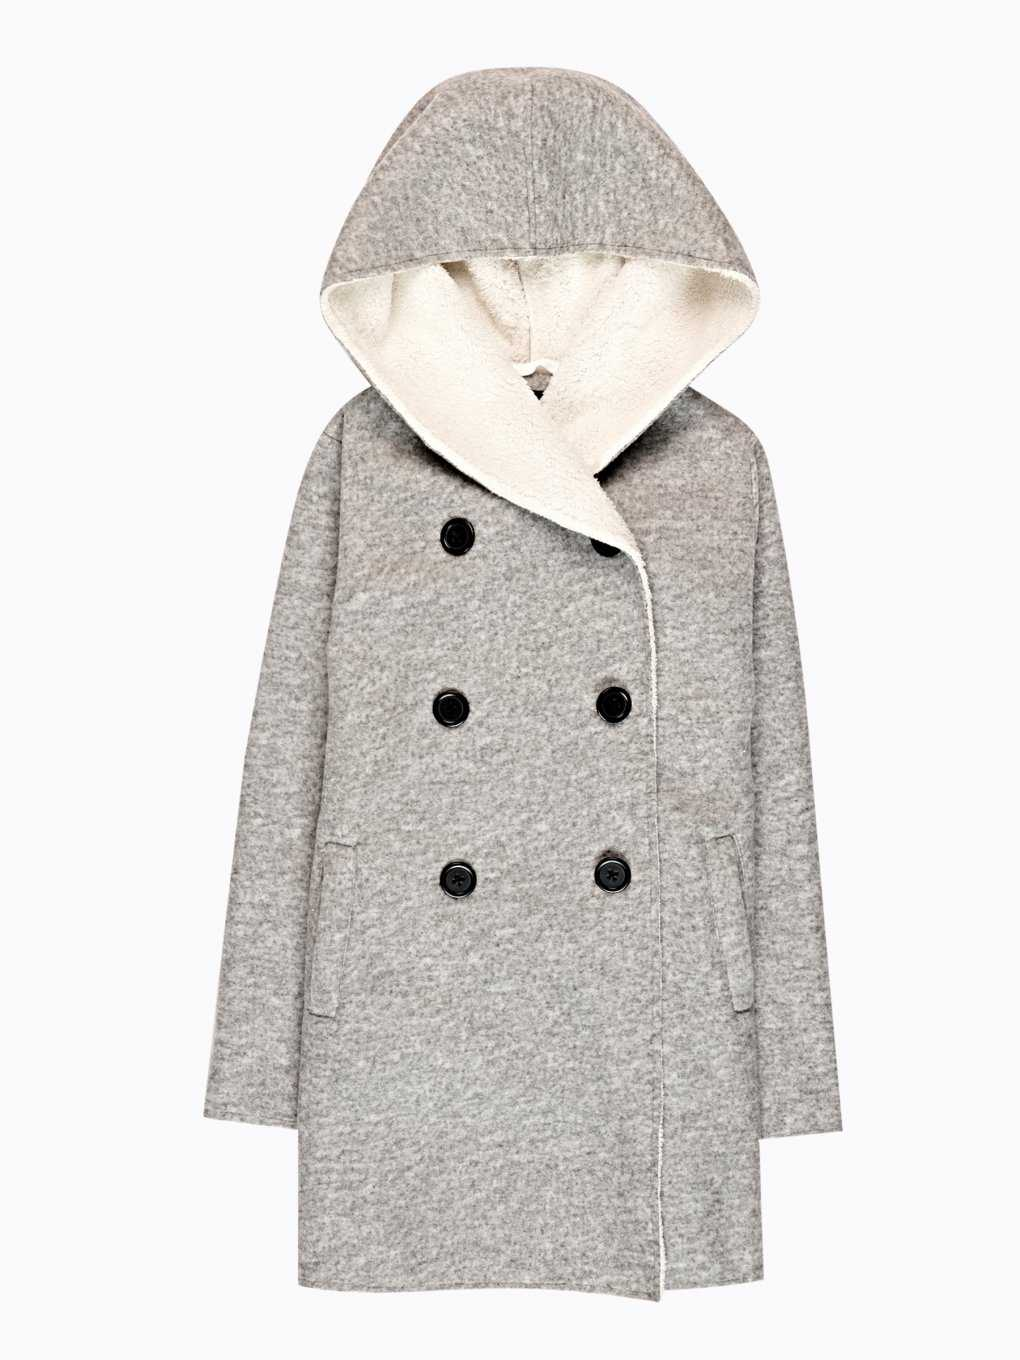 Pile lined double breasted coat with hood